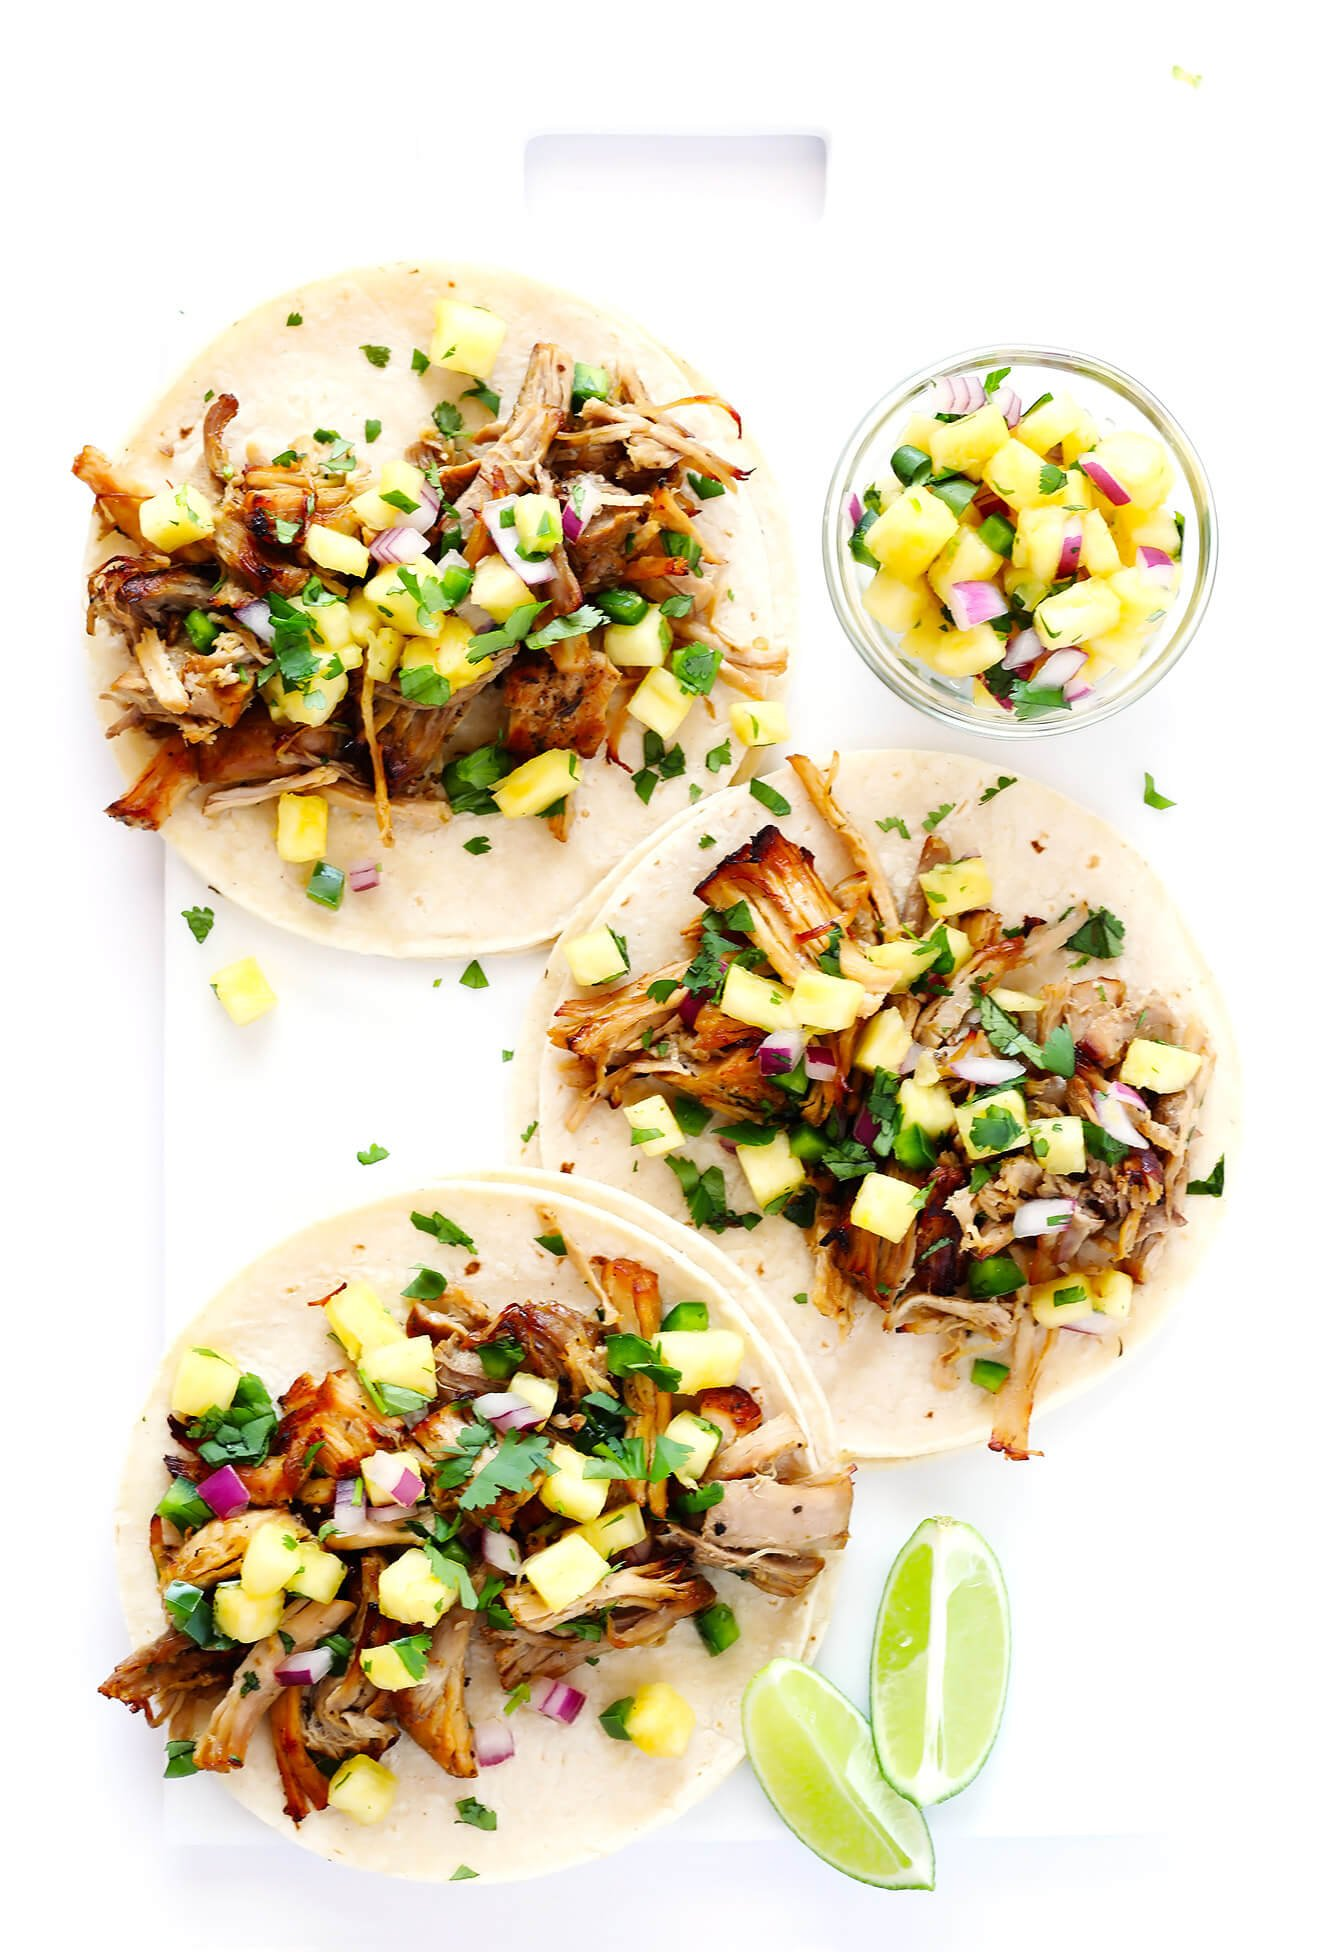 These Instant Pot Pork Carnitas Tacos are marinated in an easy mojo sauce, and SO delicious!   gimmesomeoven.com